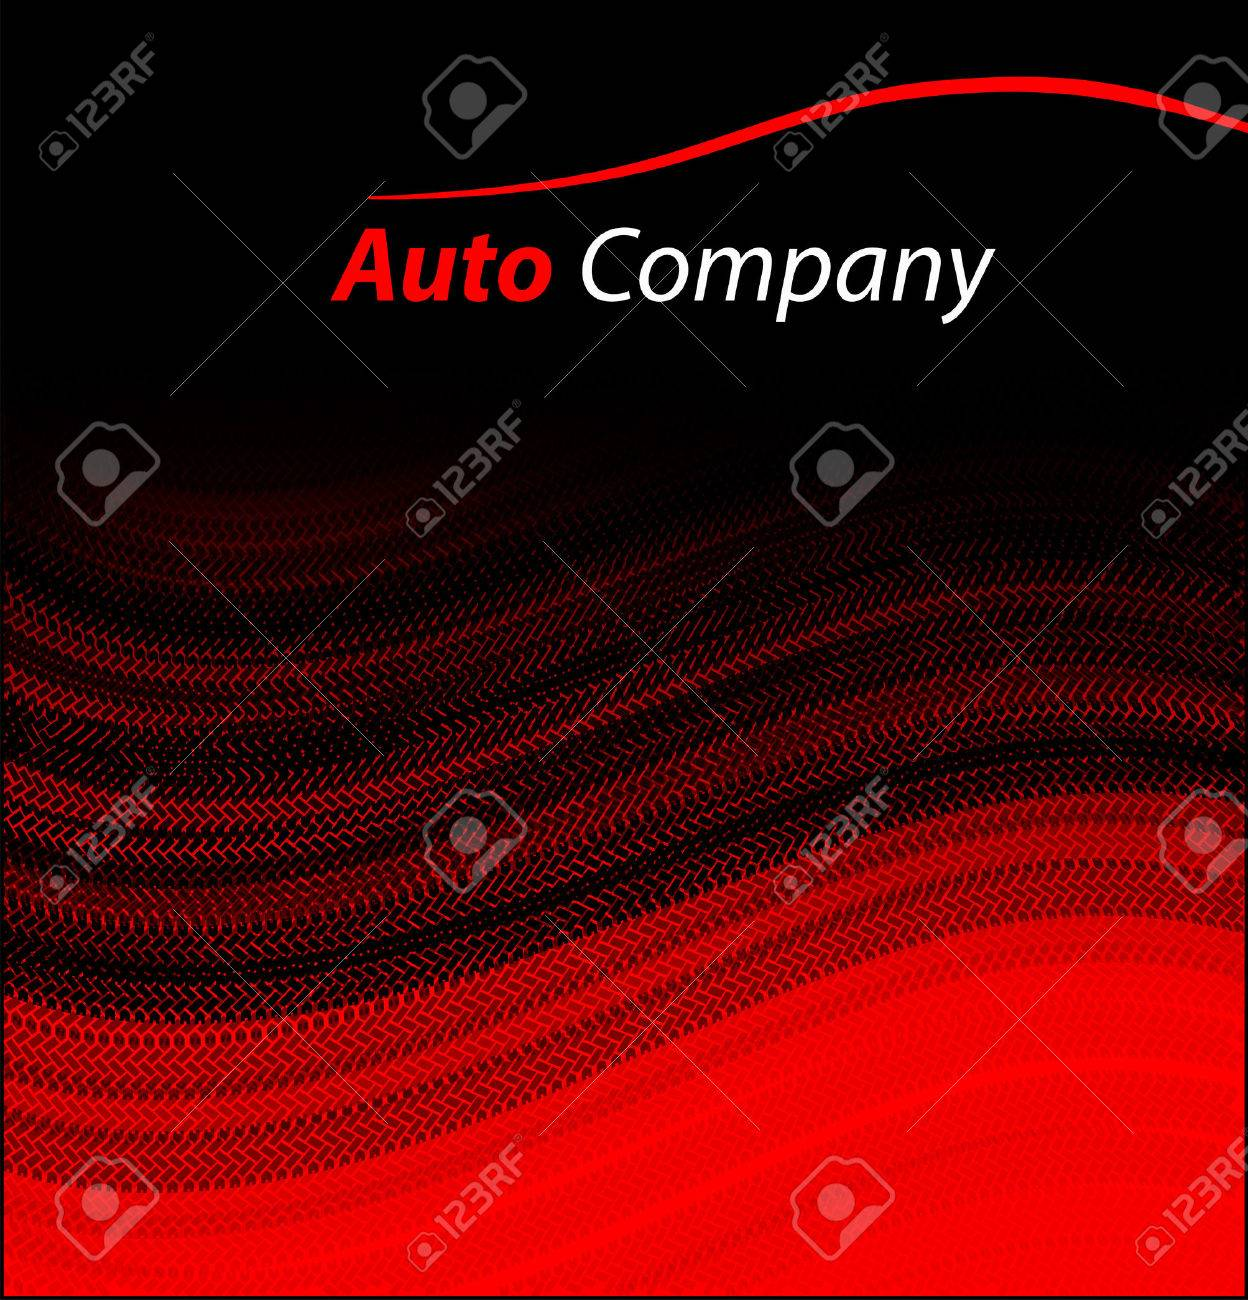 Modern Auto Company Logo Design Concept With Sports Saloon Car Royalty Free Cliparts Vectors And Stock Illustration Image 51947177